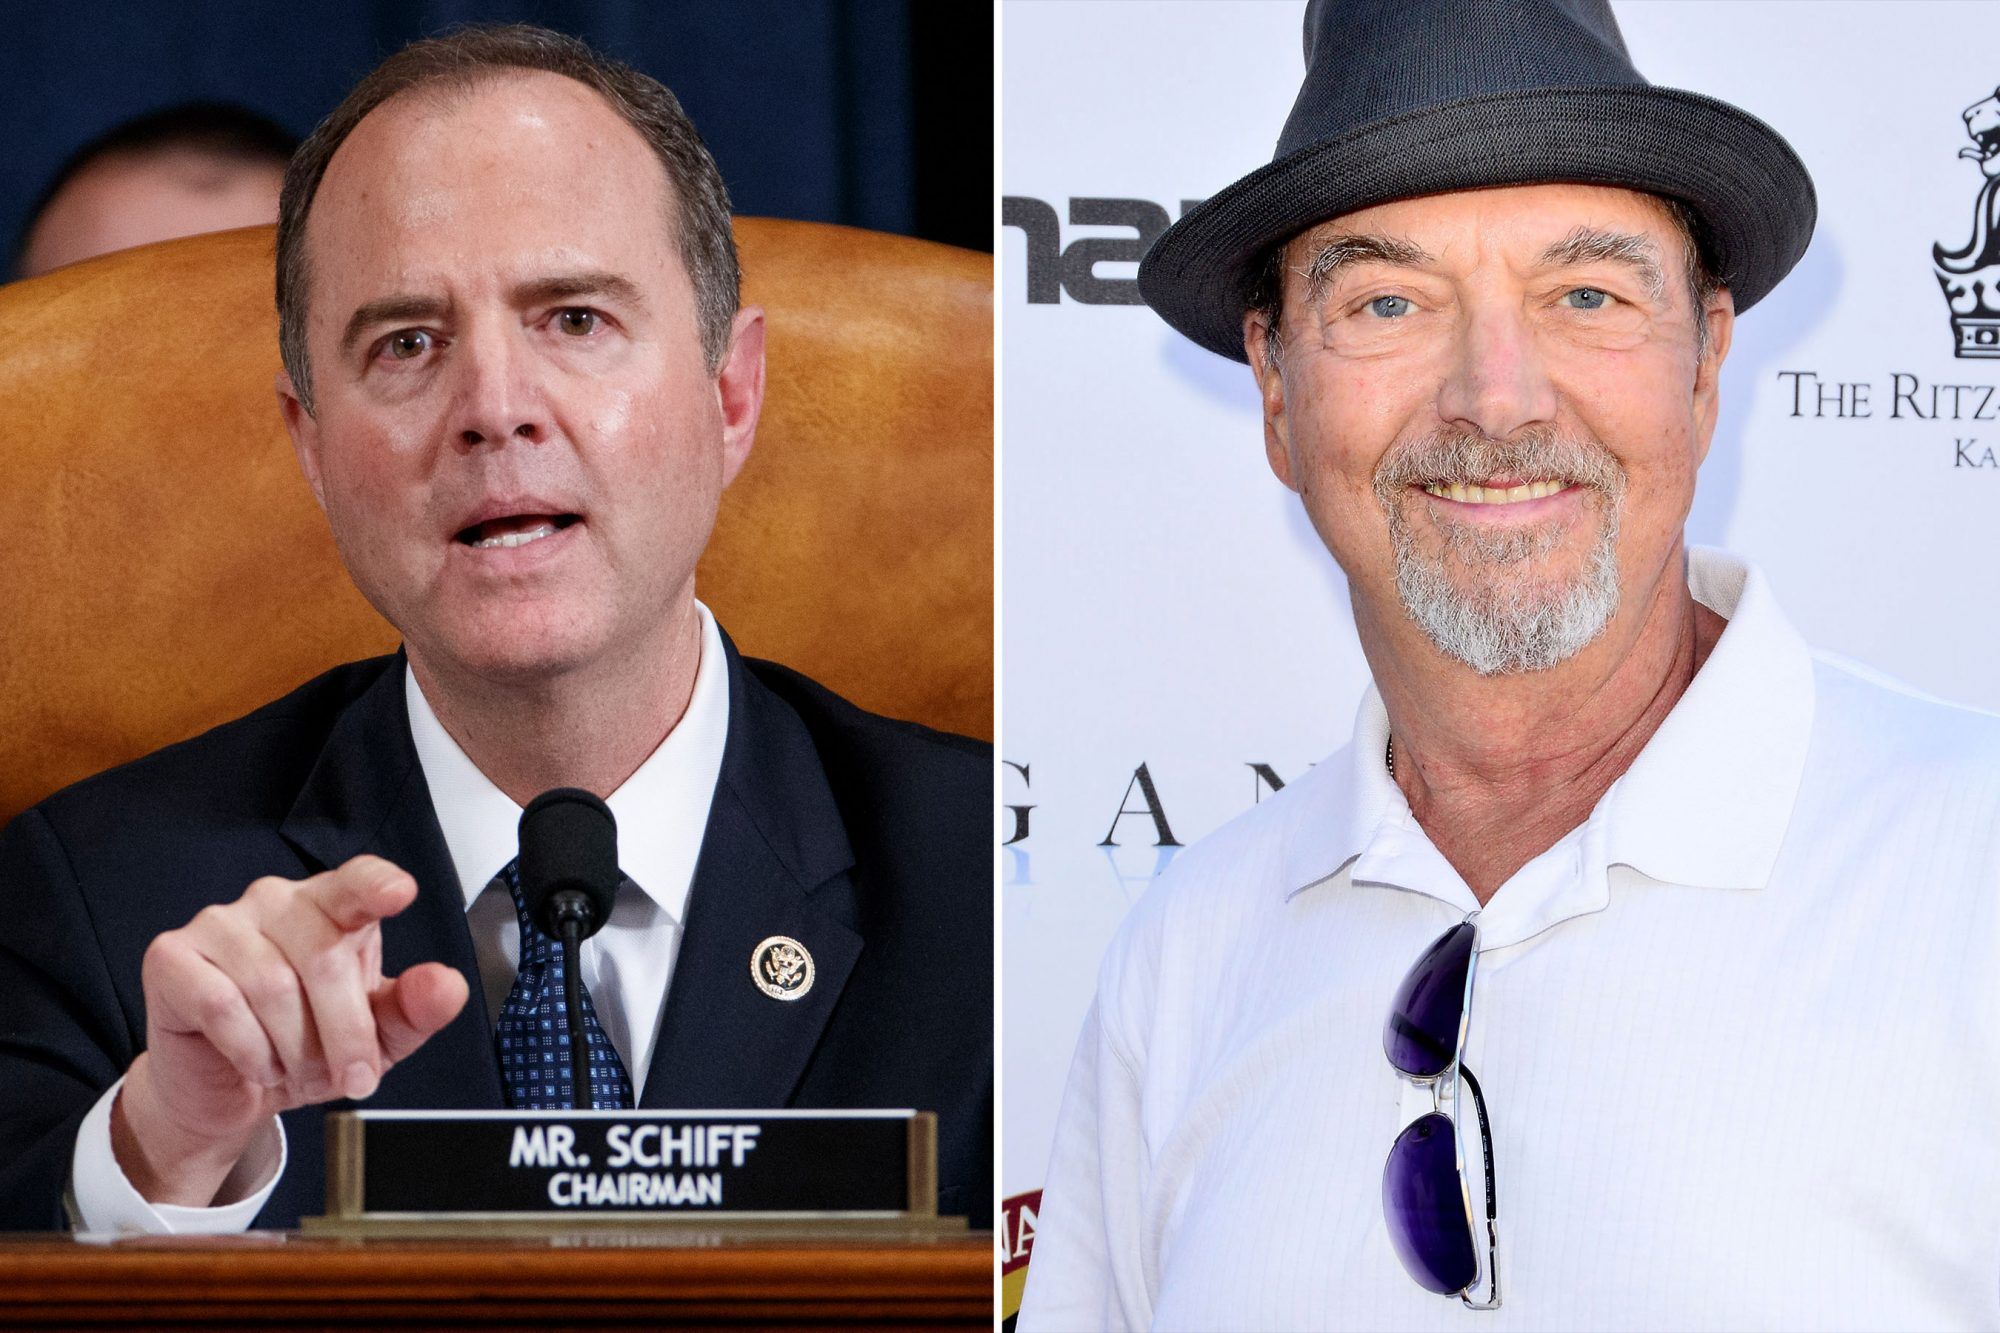 U.S. Rep. Adam Schiff, played by Gregory Itzin